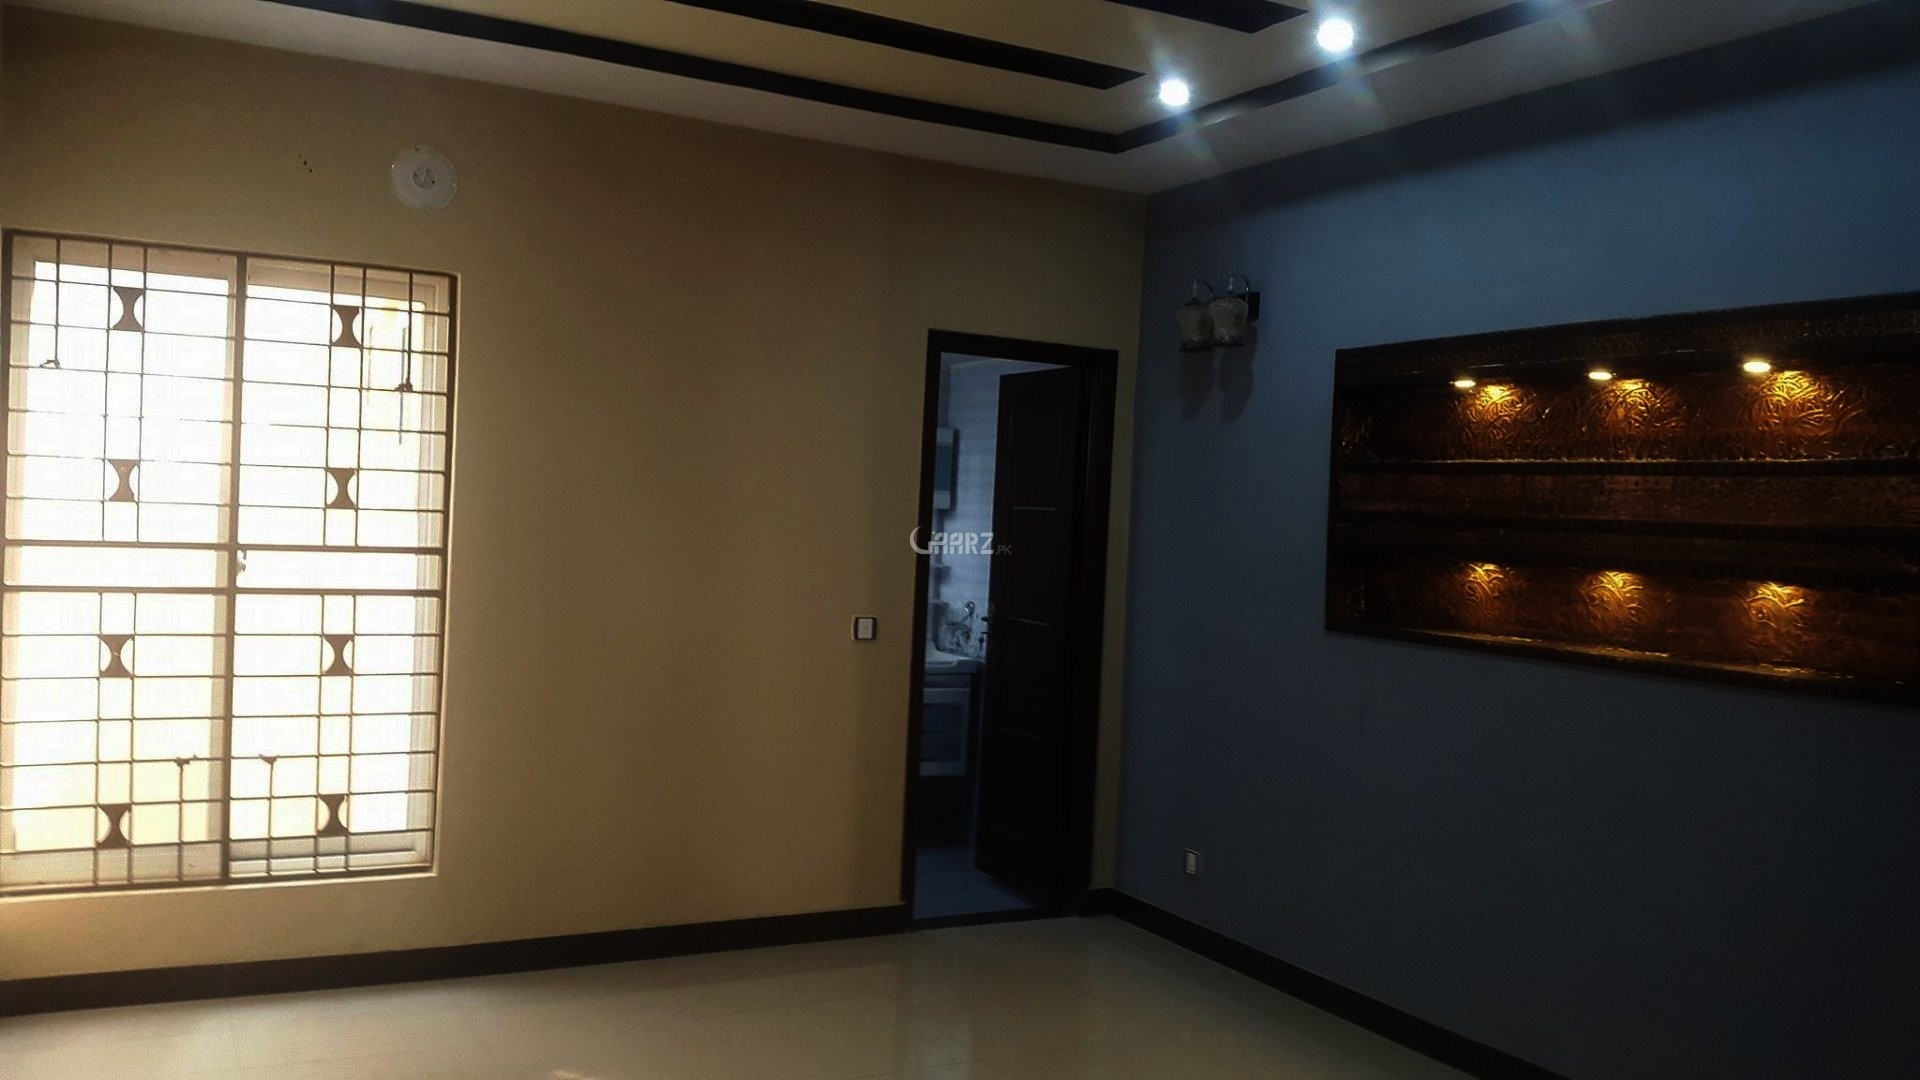 10 Marla Upper Portion For Rent In KB Colony, Lahore